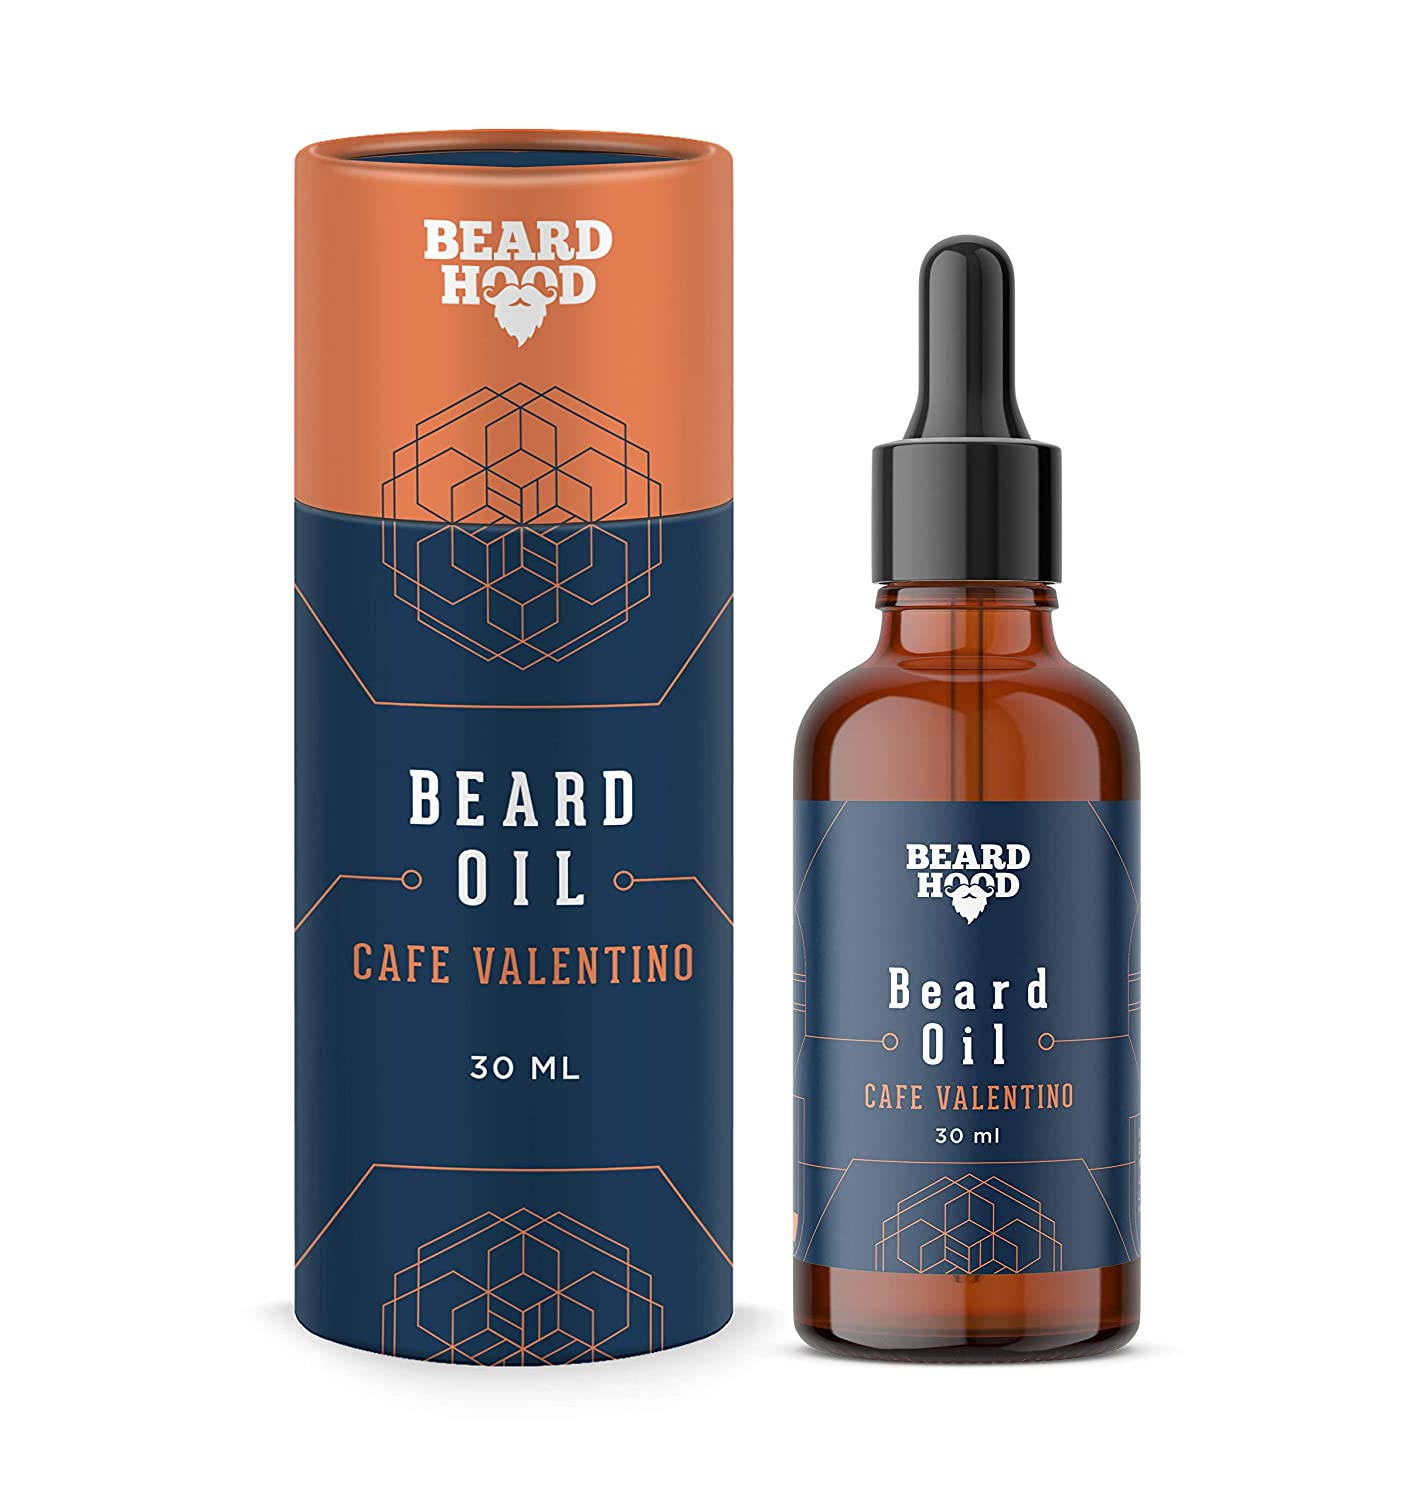 Best beard oil for beard growth and thicken for men in India